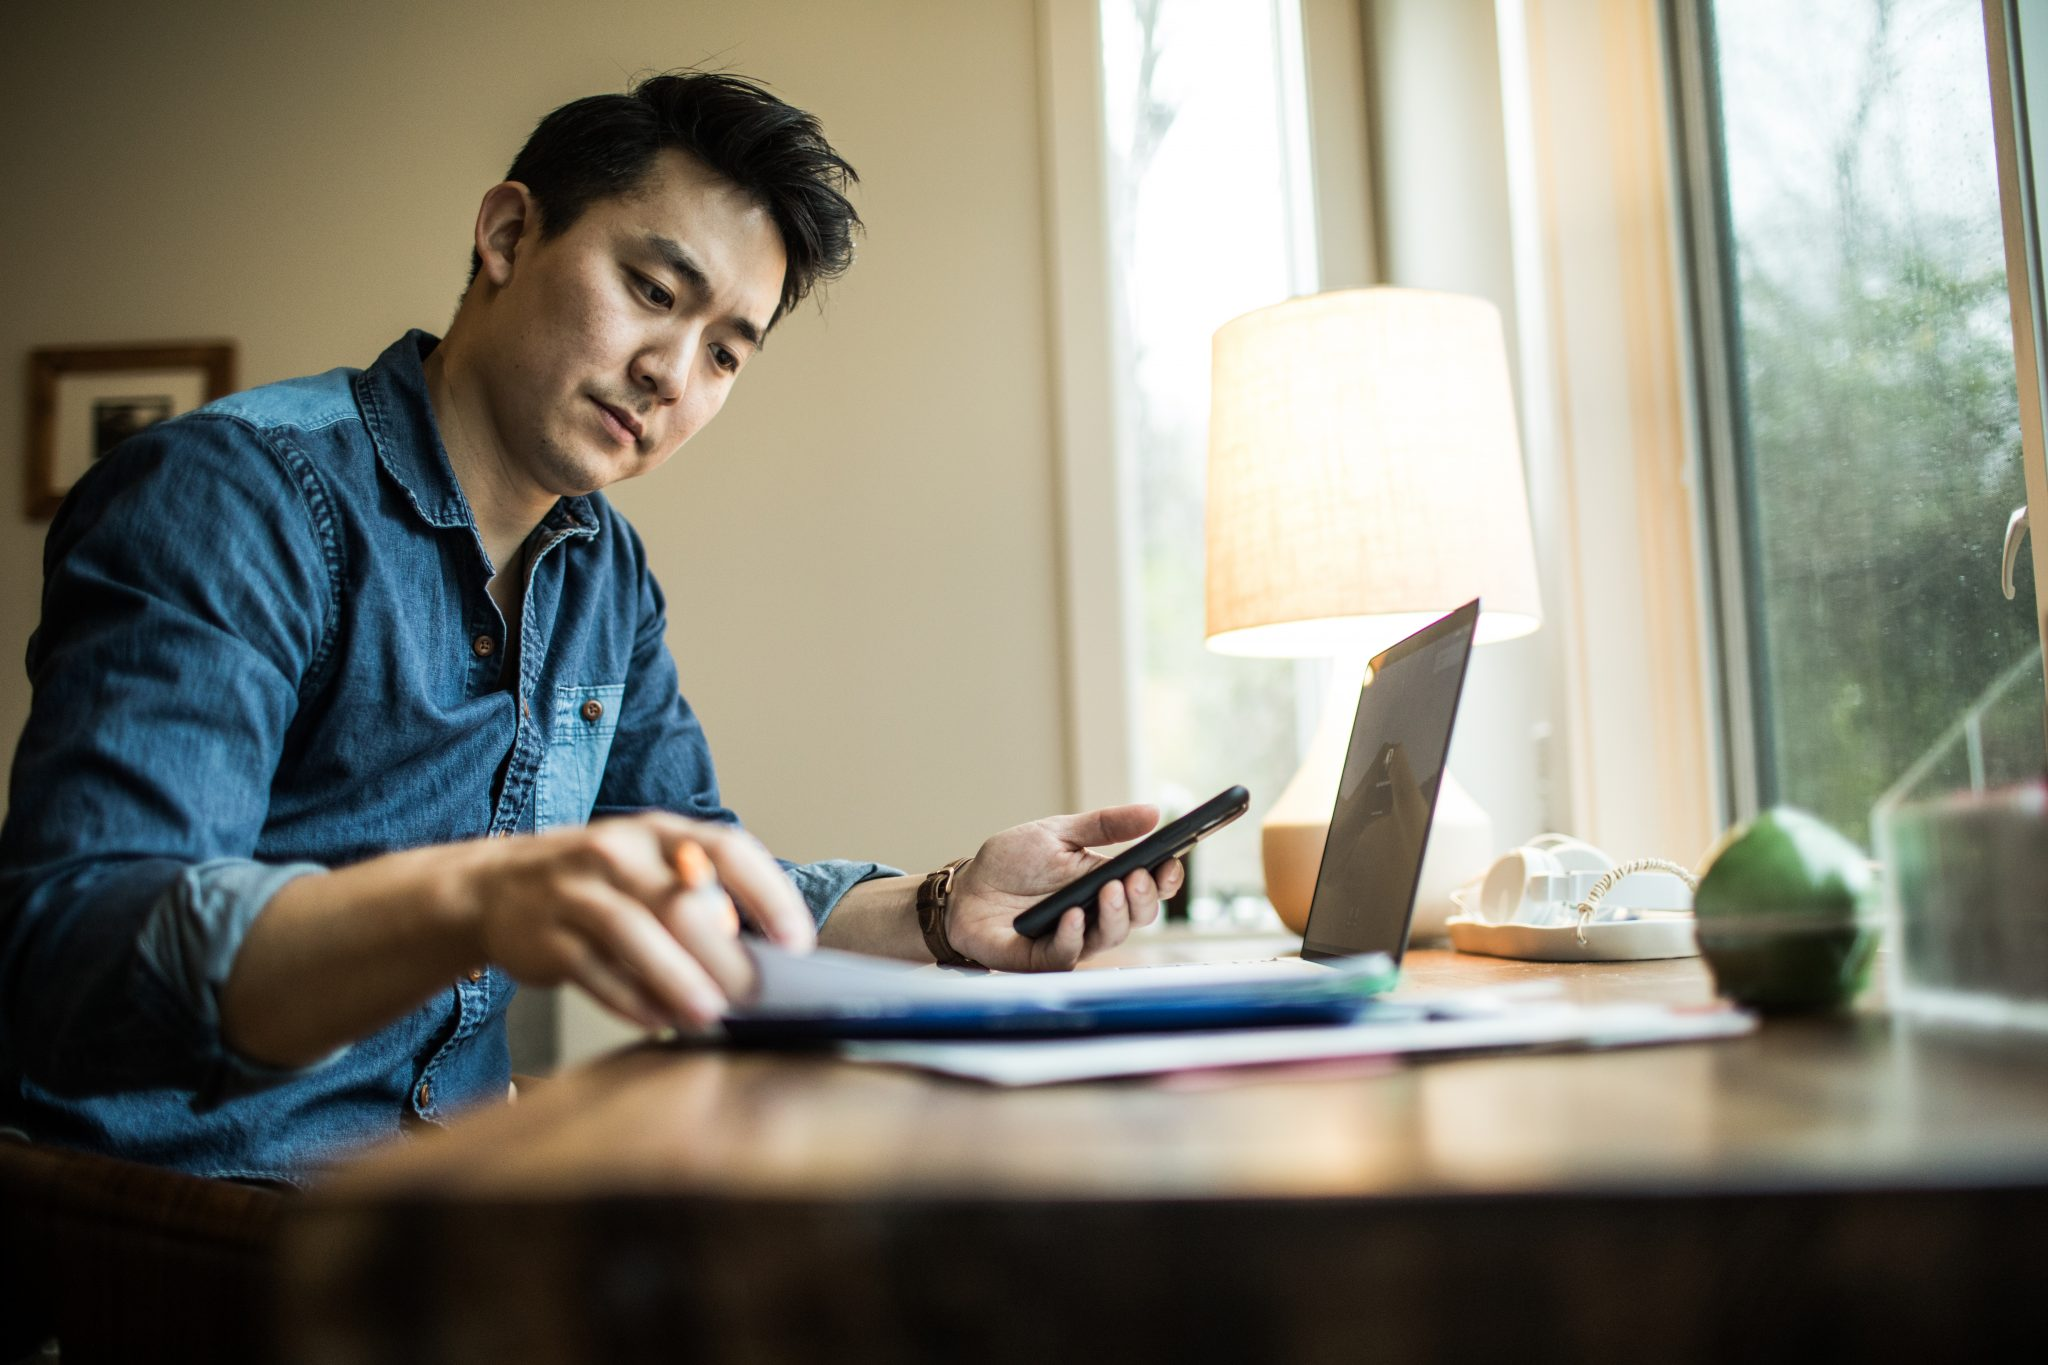 Man (early 30s) working in home office